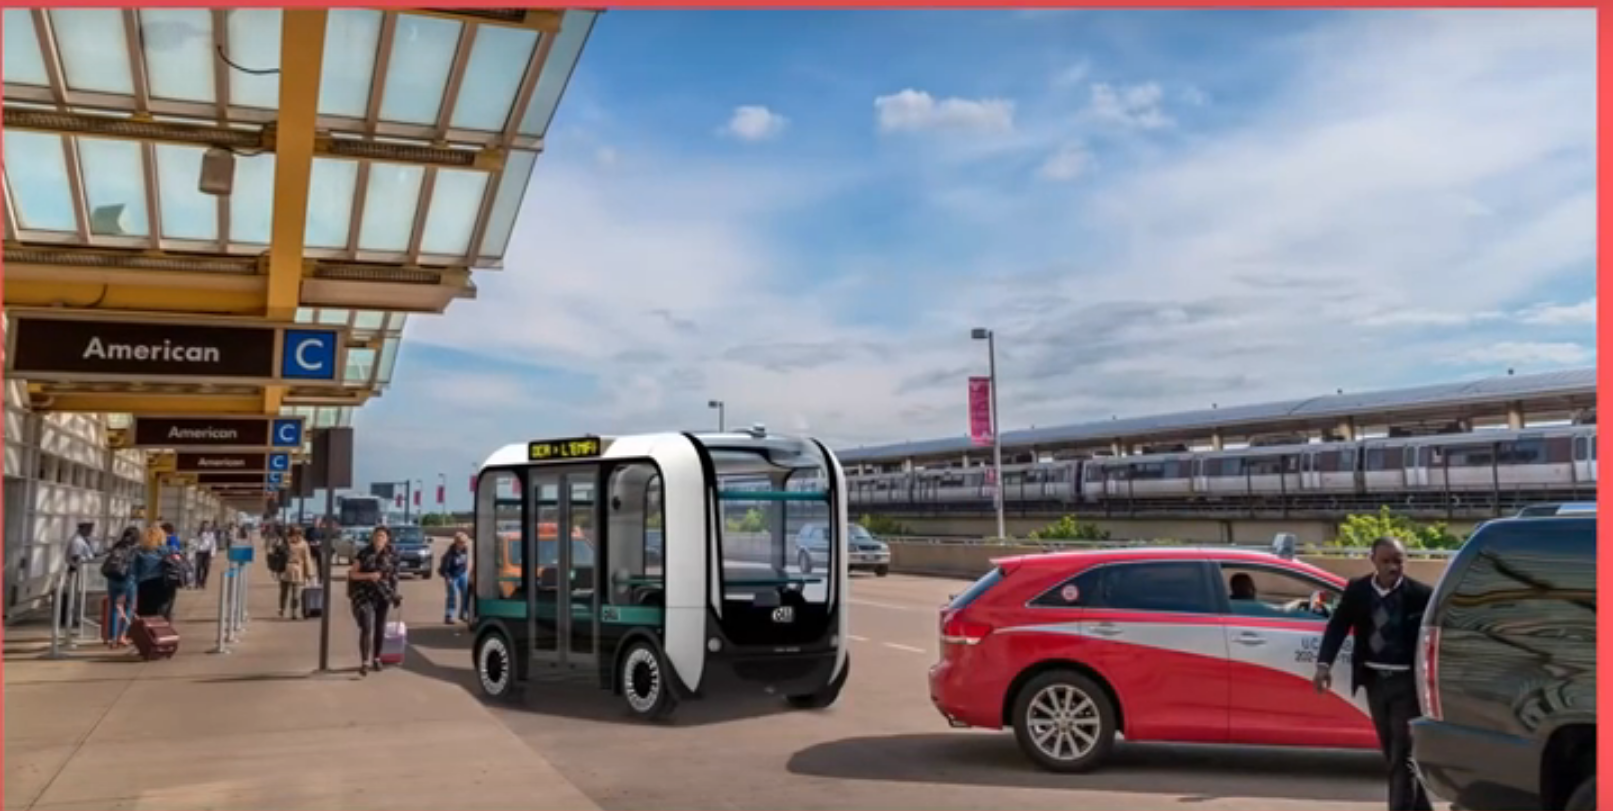 olli driverless bus.png